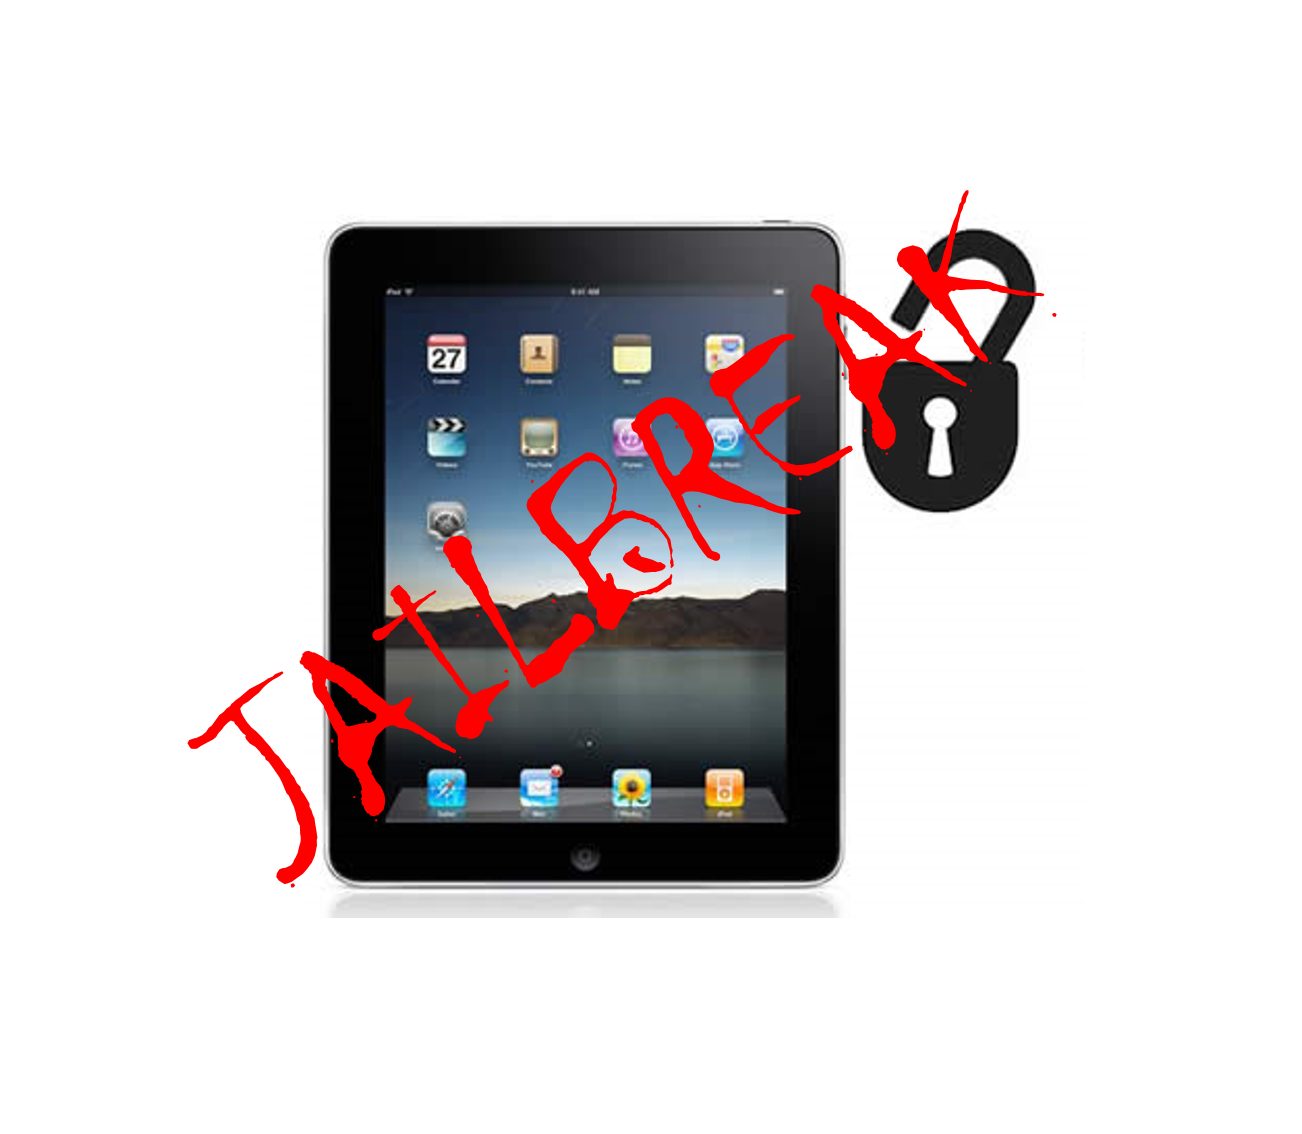 Jailbreak iPAD air 2, 1 mini 3,2,1 iPOD touch 5